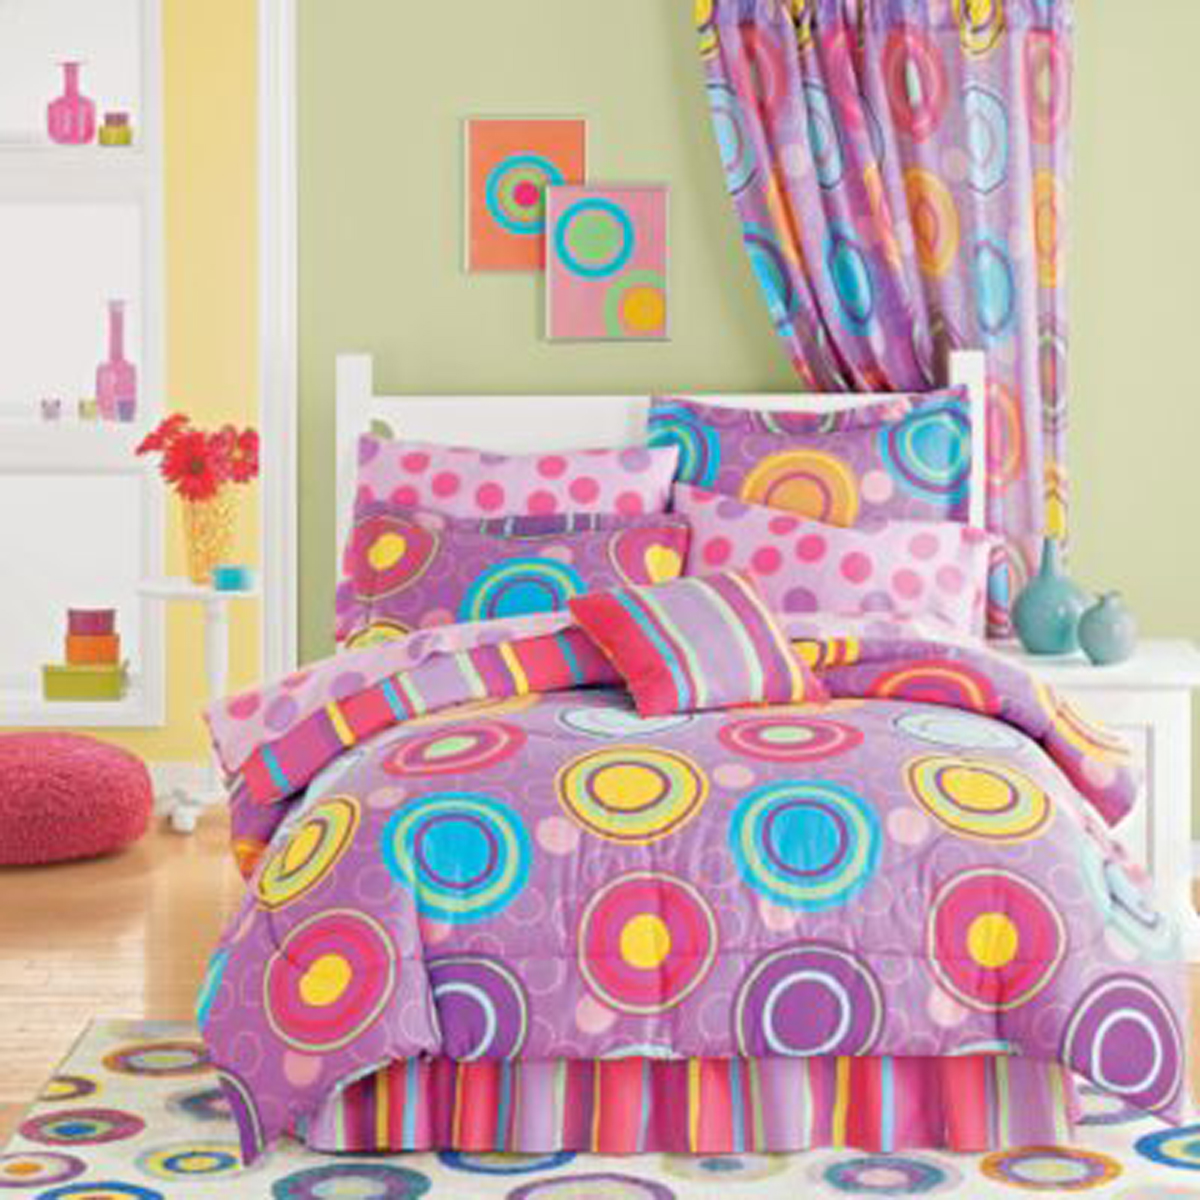 Decorating ideas for kids rooms decoration news - Toddler bed decorating ideas ...